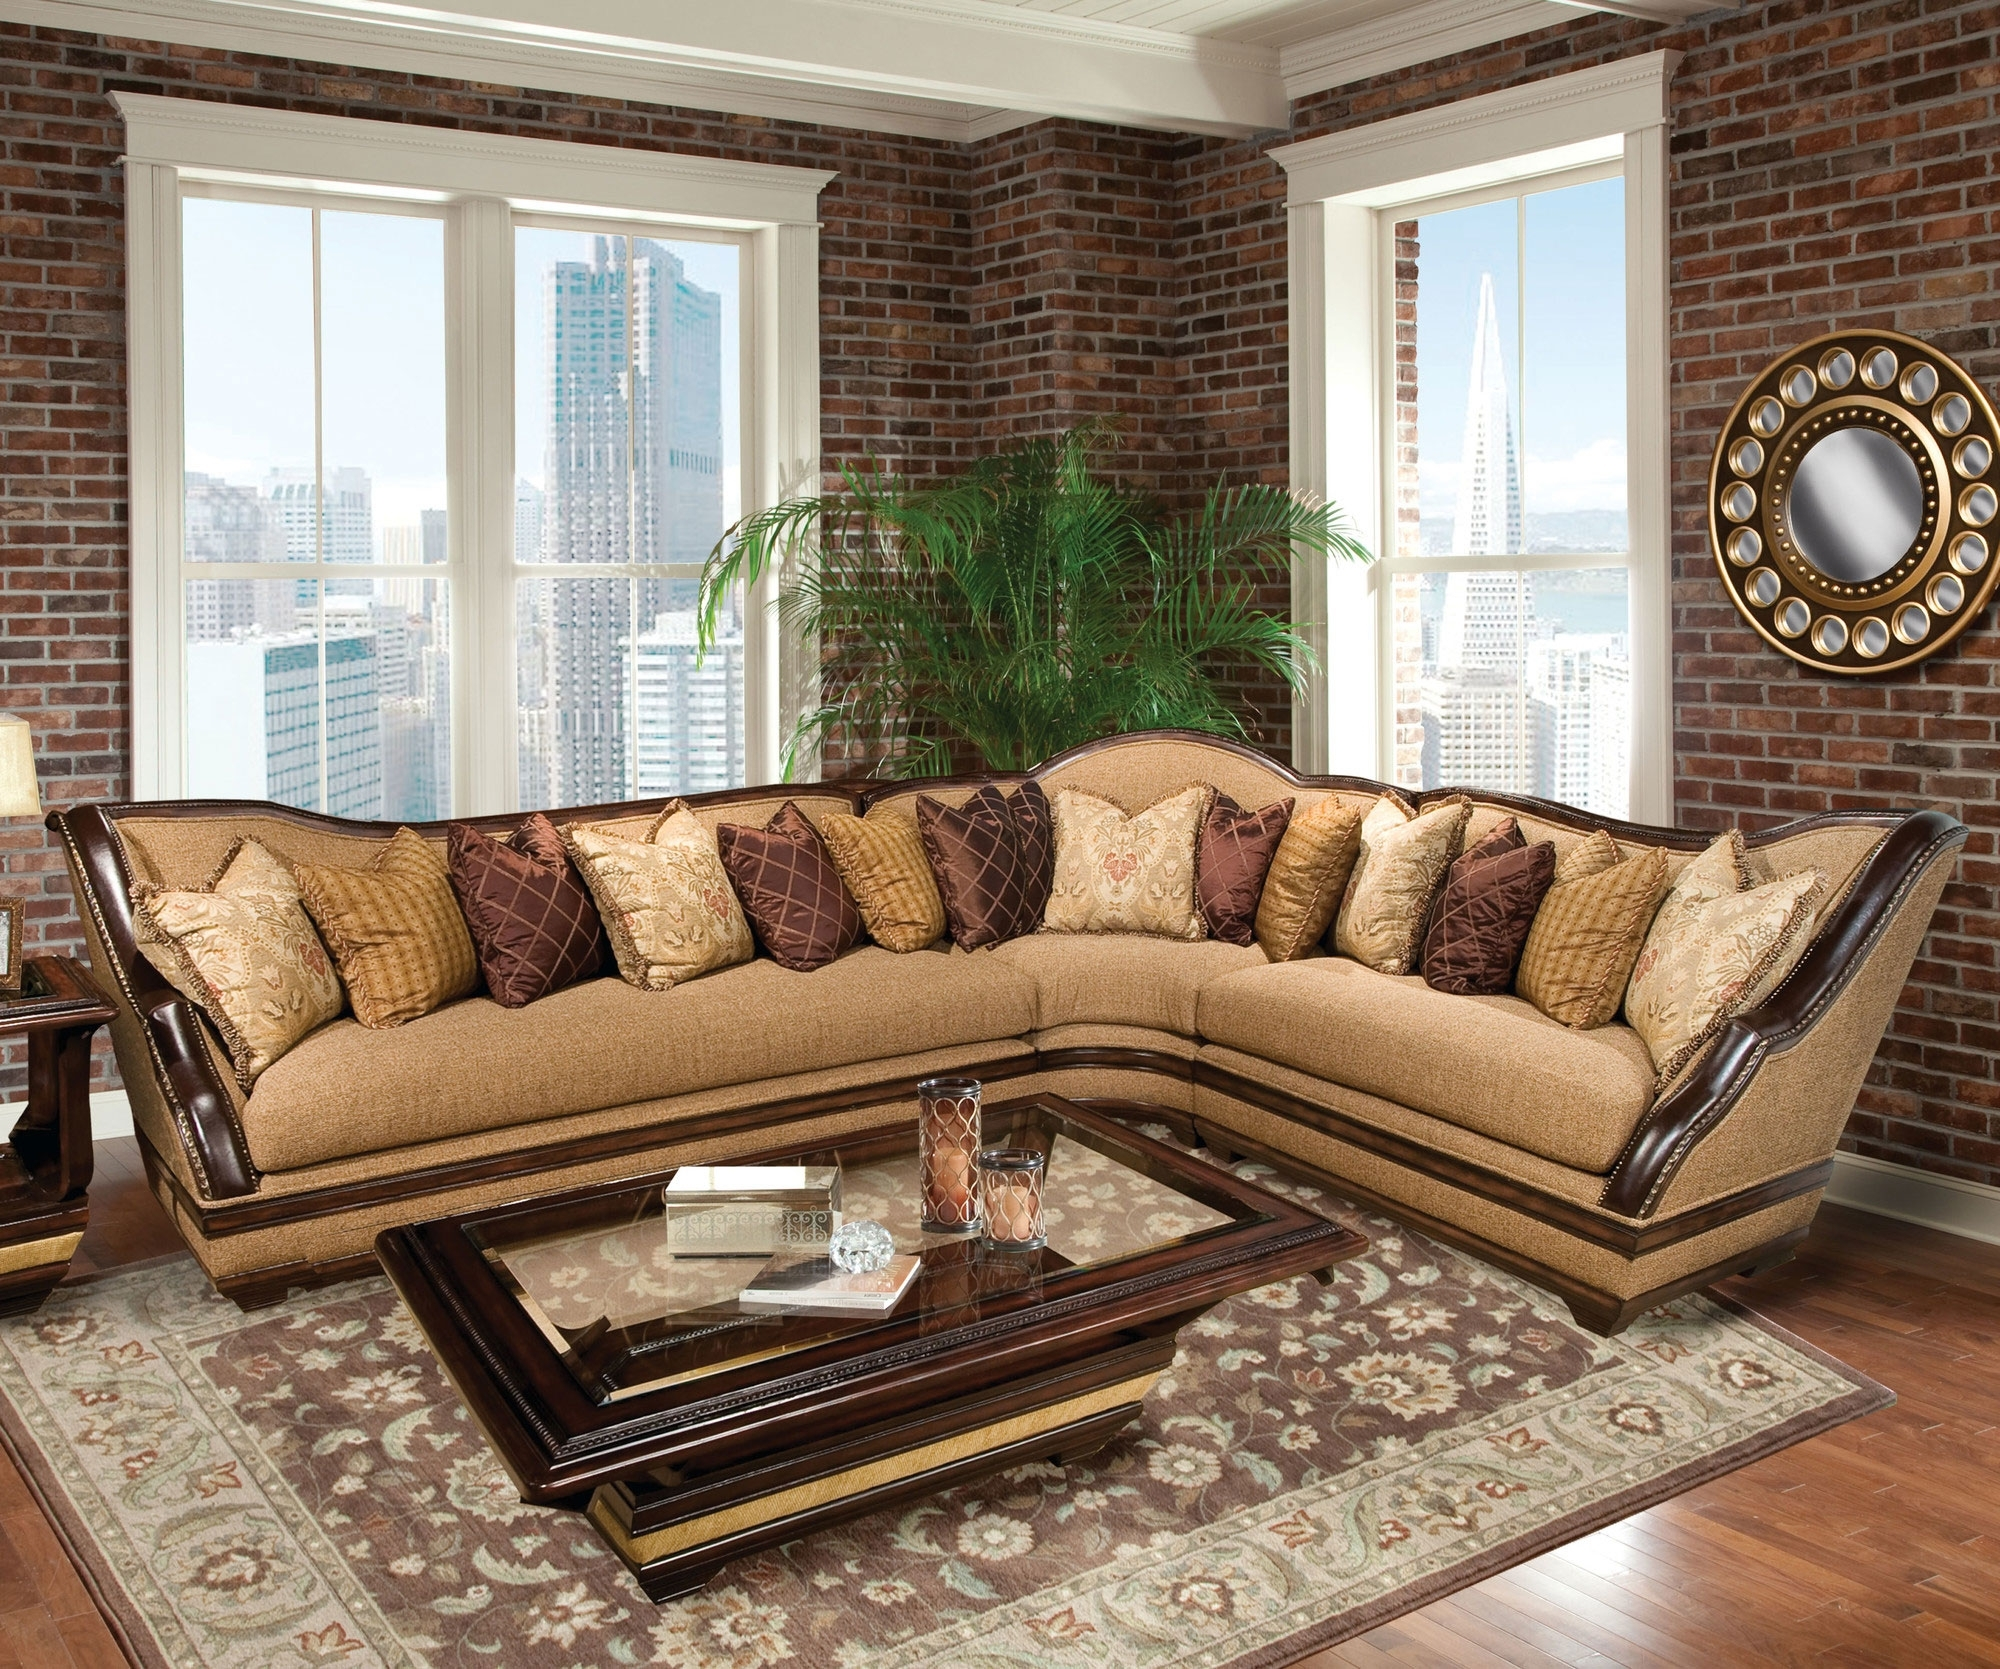 Macon Ga Sectional Sofas Pertaining To Recent Benetti's Italia Beladonna Wood Trim Sectional Sofa Set The (View 14 of 20)